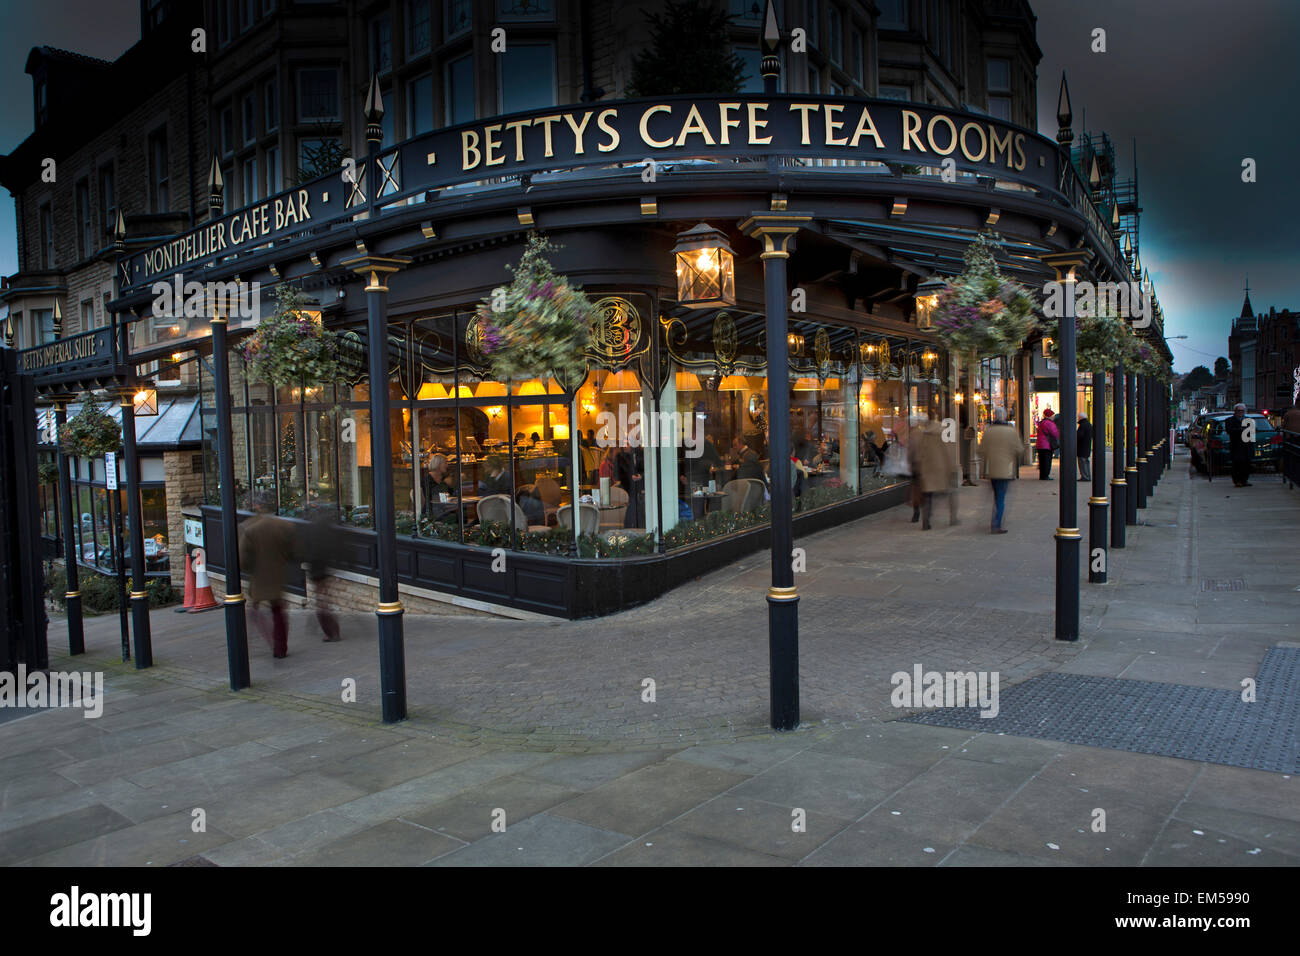 UK, England, Yorkshire, Harrogate, Parliament Street, Betty's Tea Rooms at Christmas, night view - Stock Image